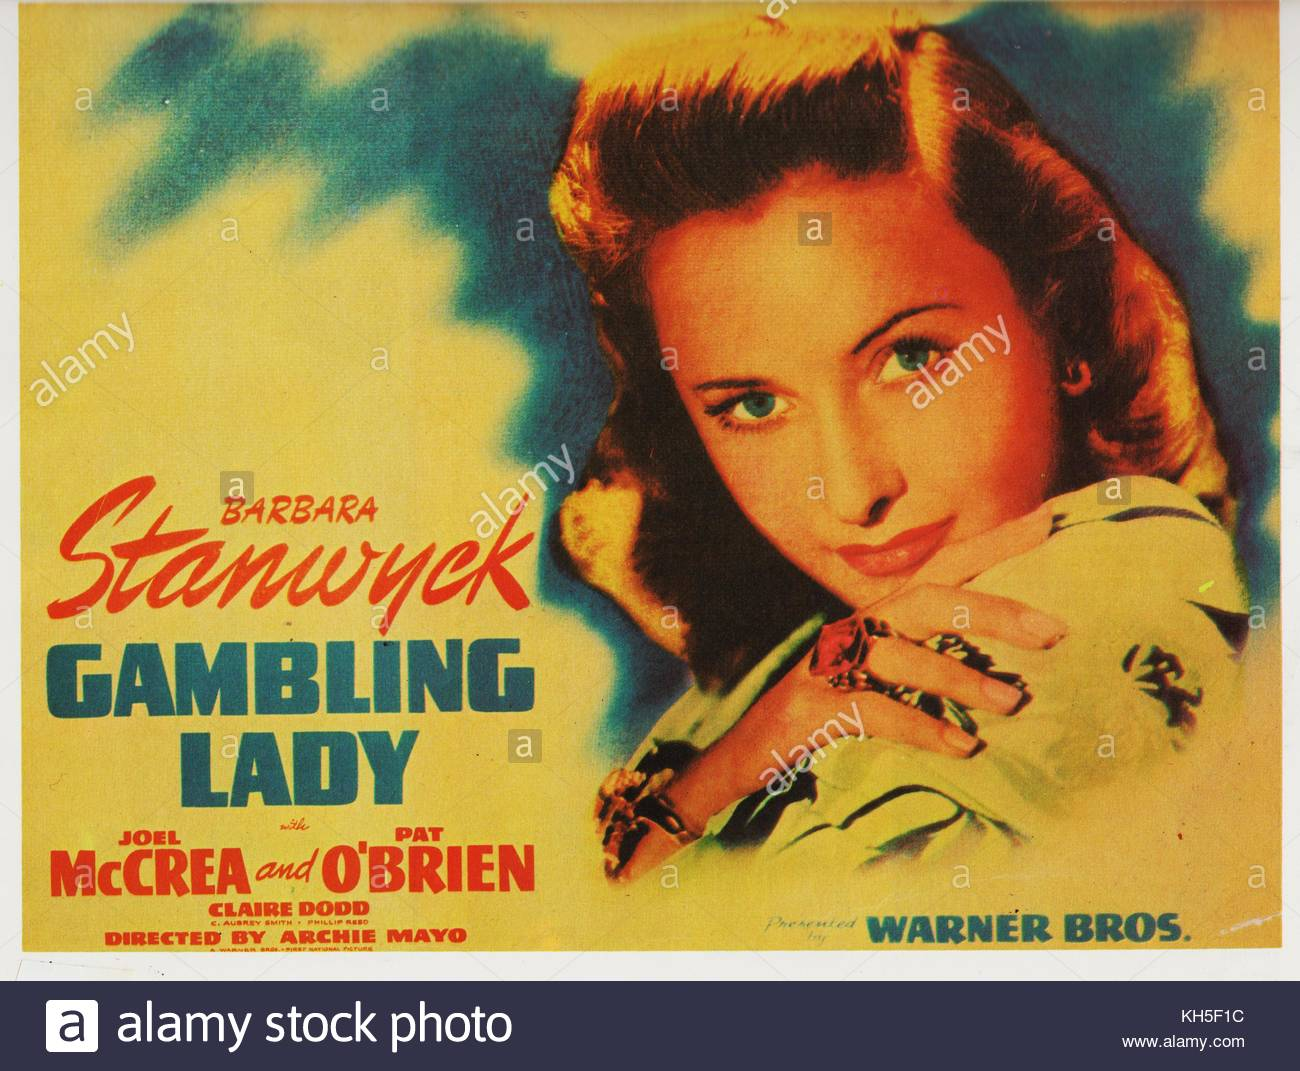 Gambling lady (1934)